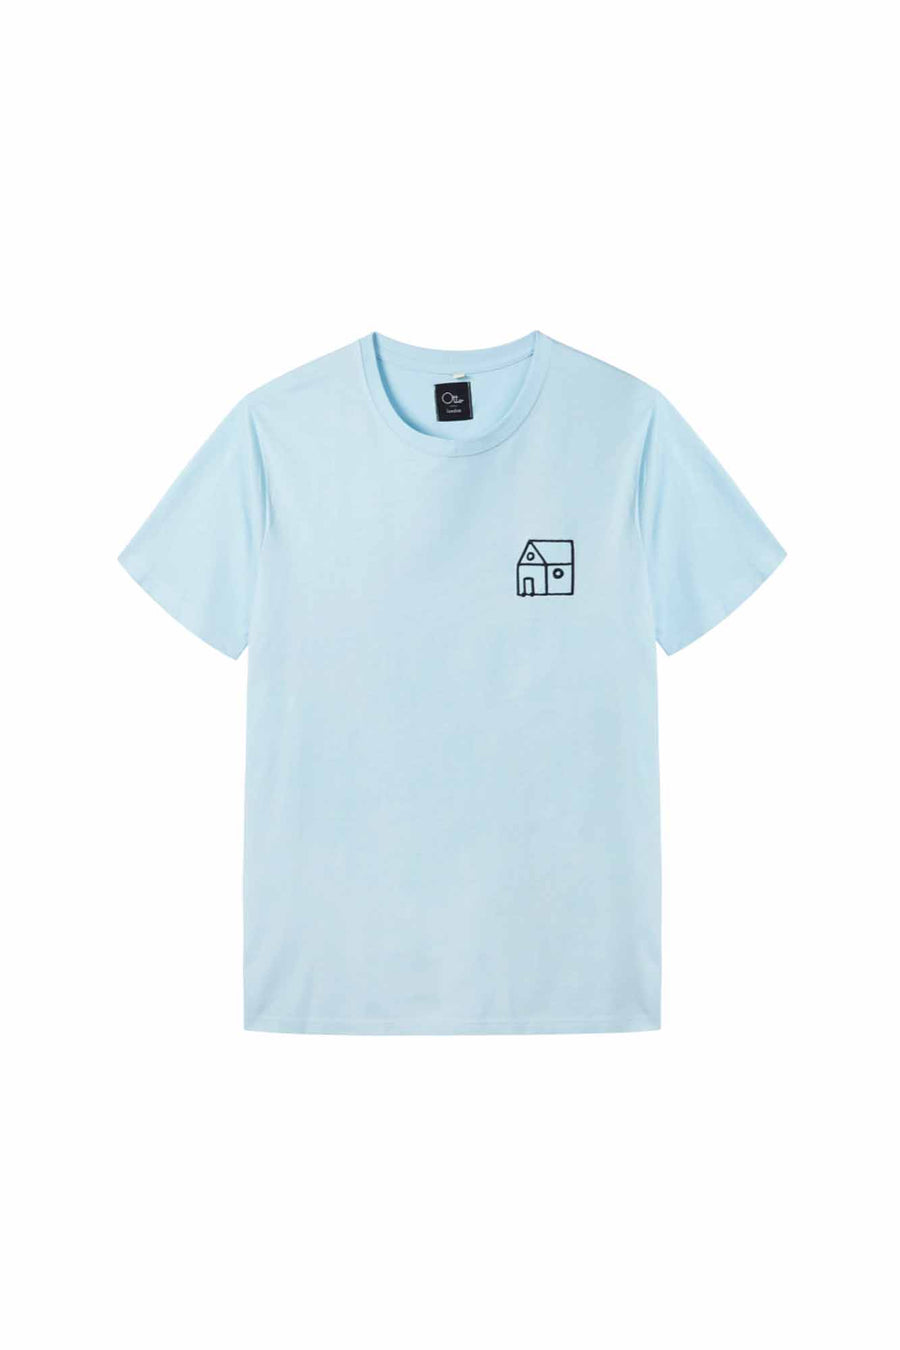 RAA x Otto London Tee - Aquamarine